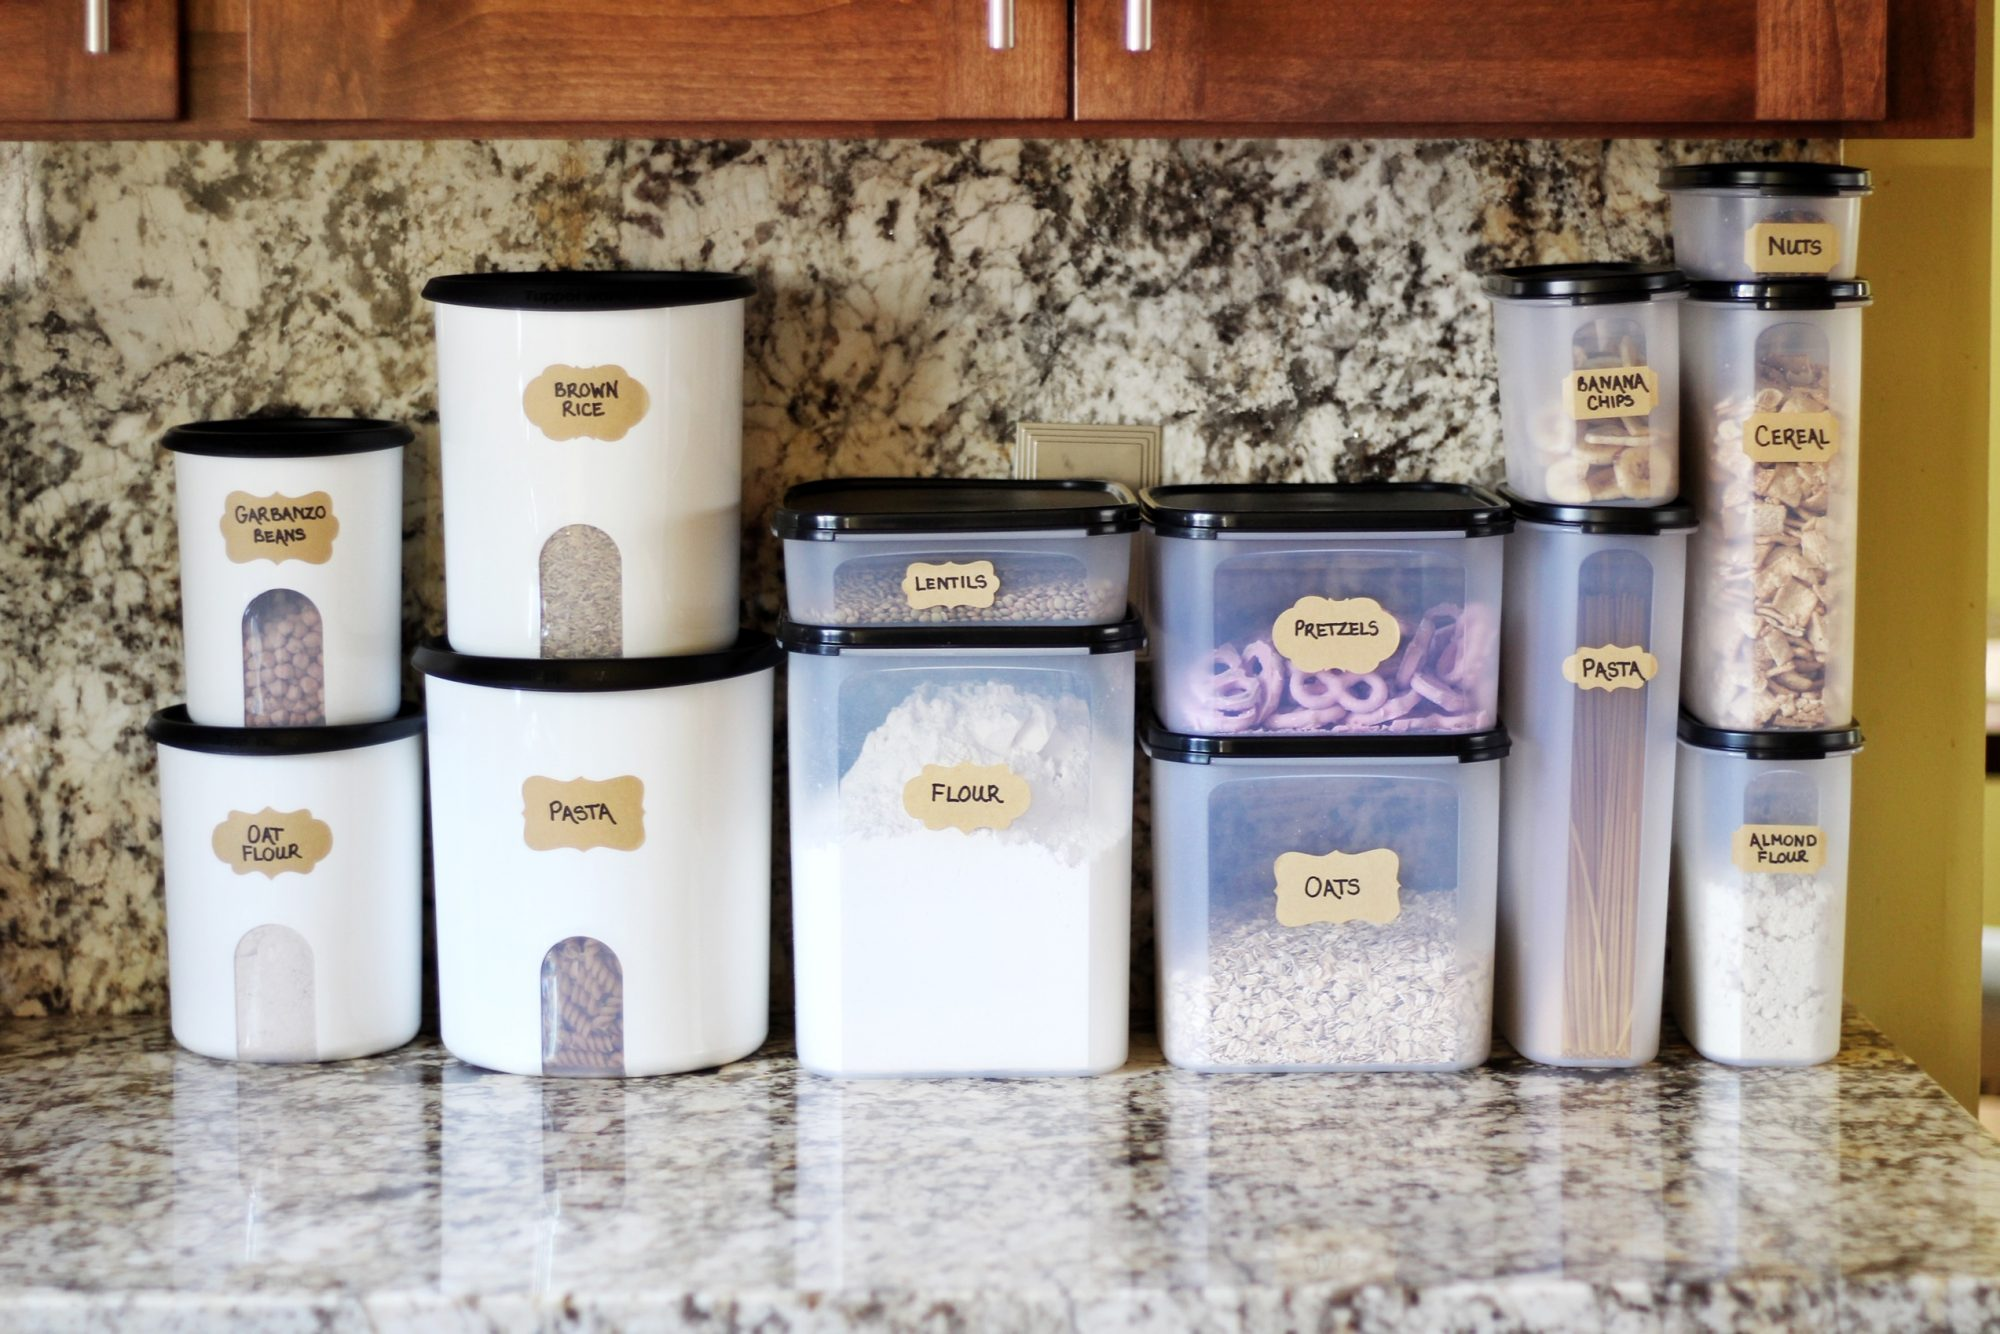 Pantry staples for a stocked and healthy kitchen